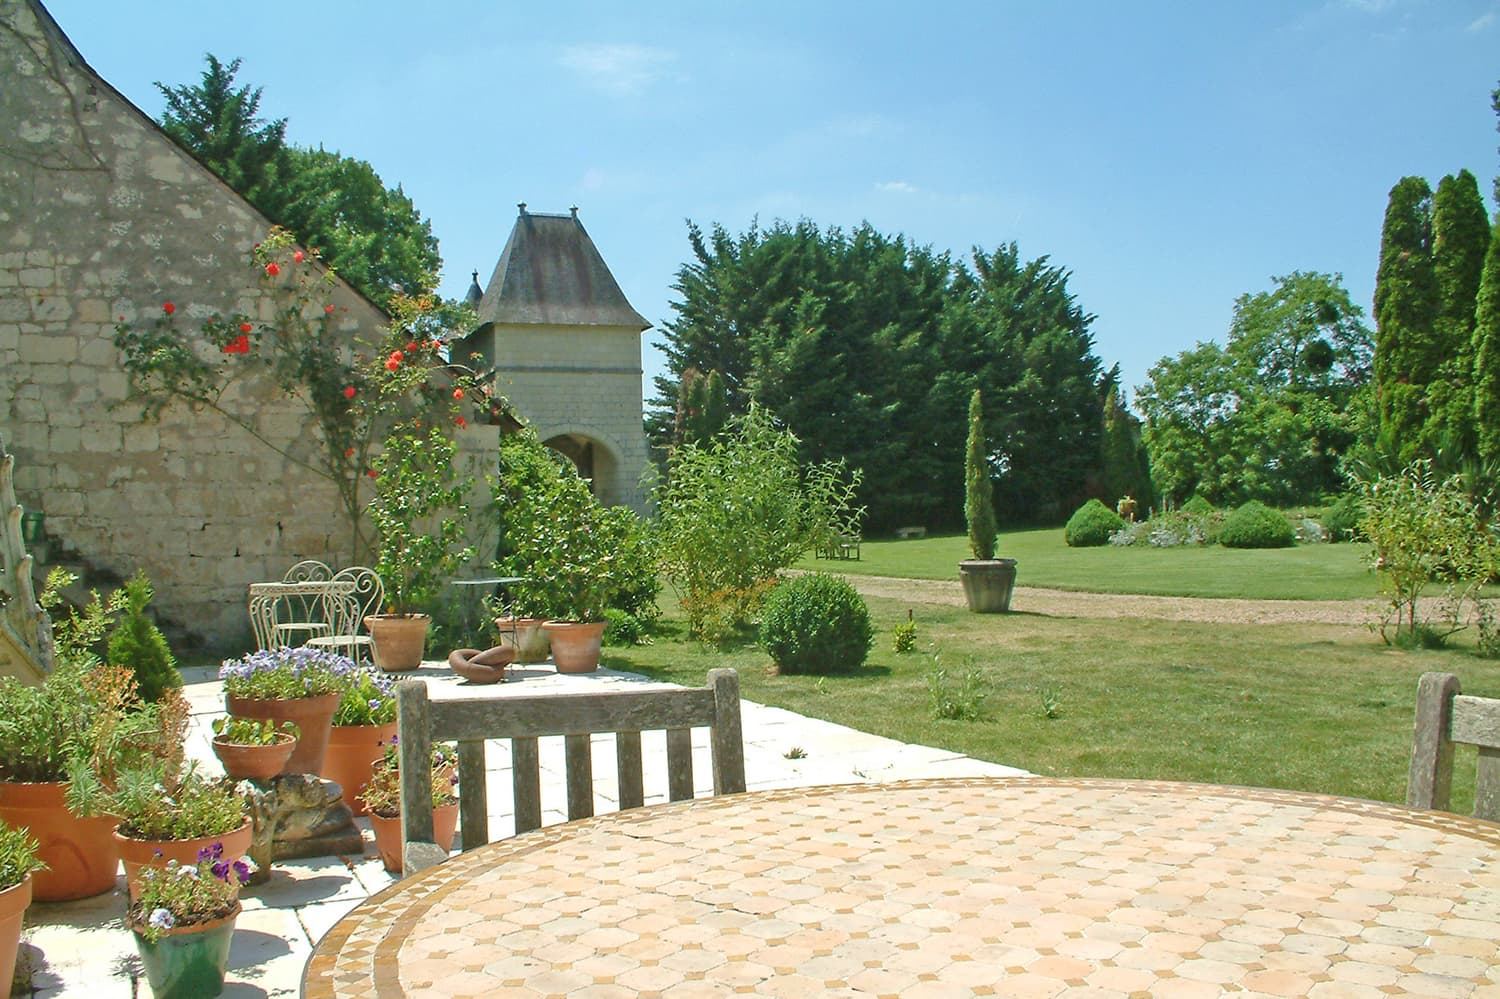 Rental apartment in Loire